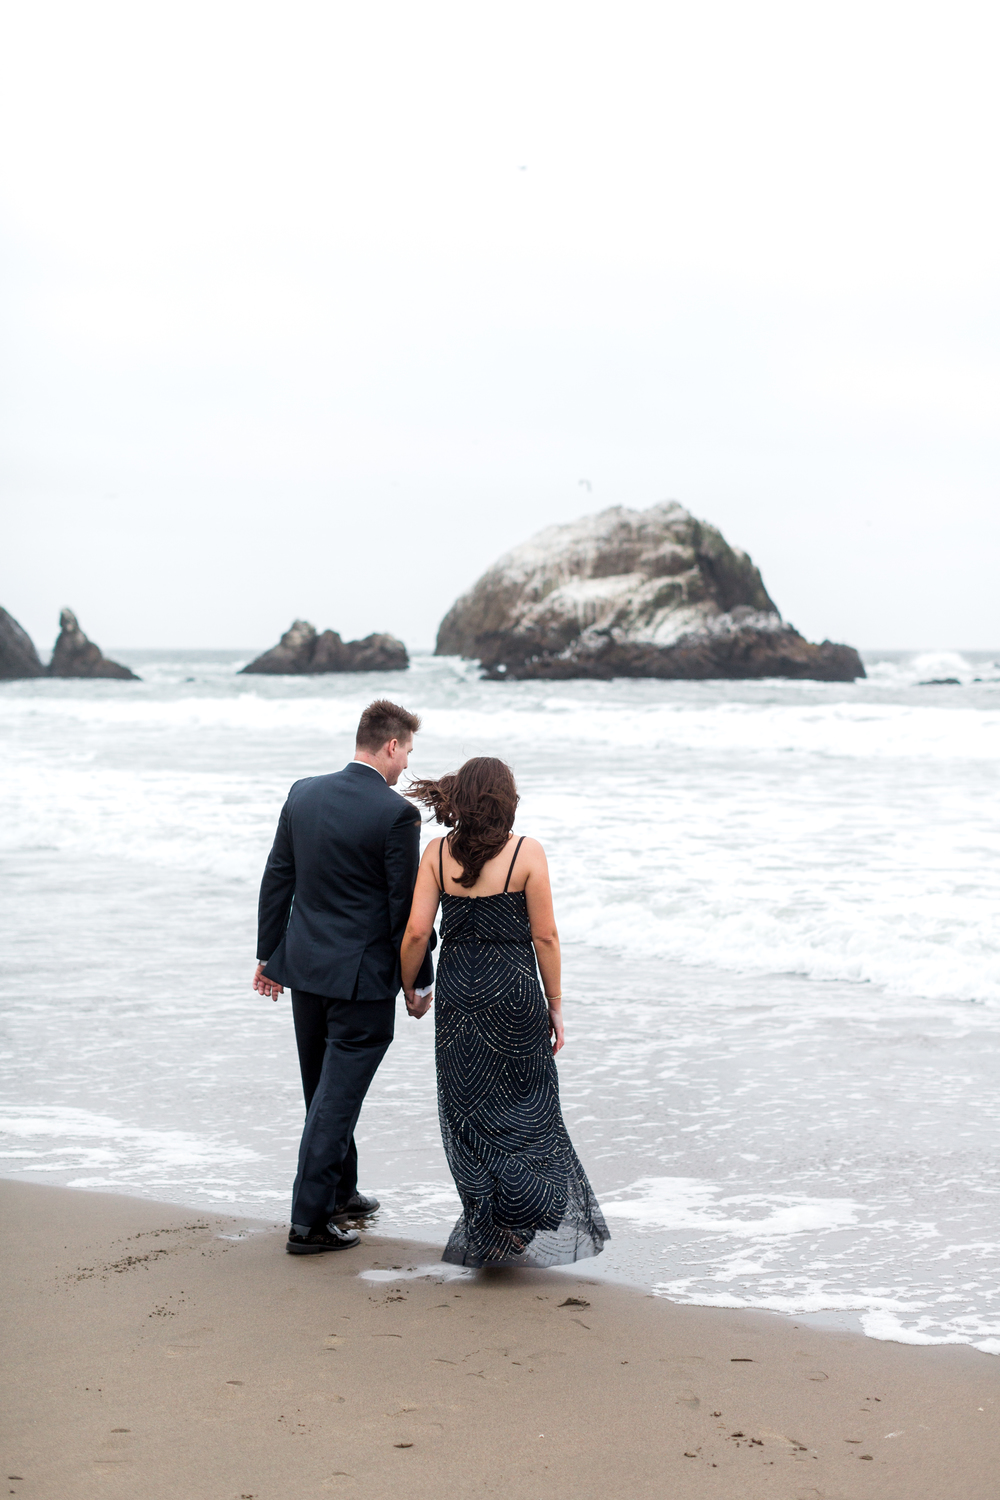 sutro-baths-engagement-photos-90.jpg